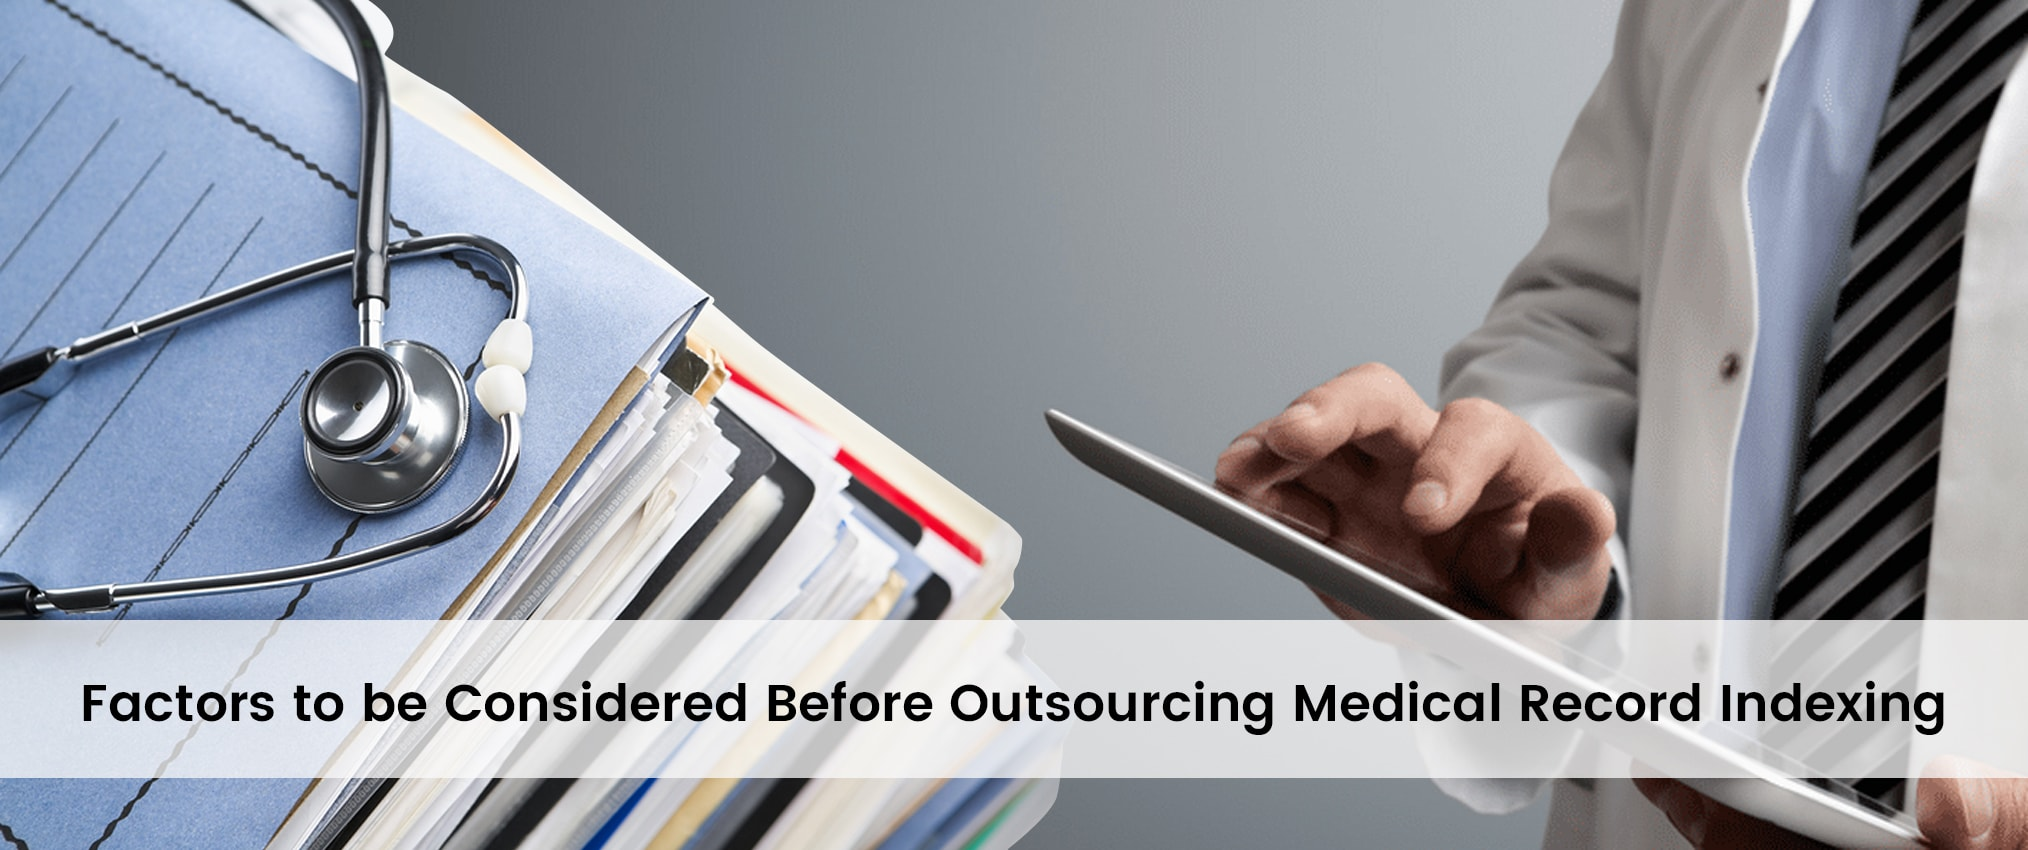 factors-to-be-considered-before-outsourcing-main-min